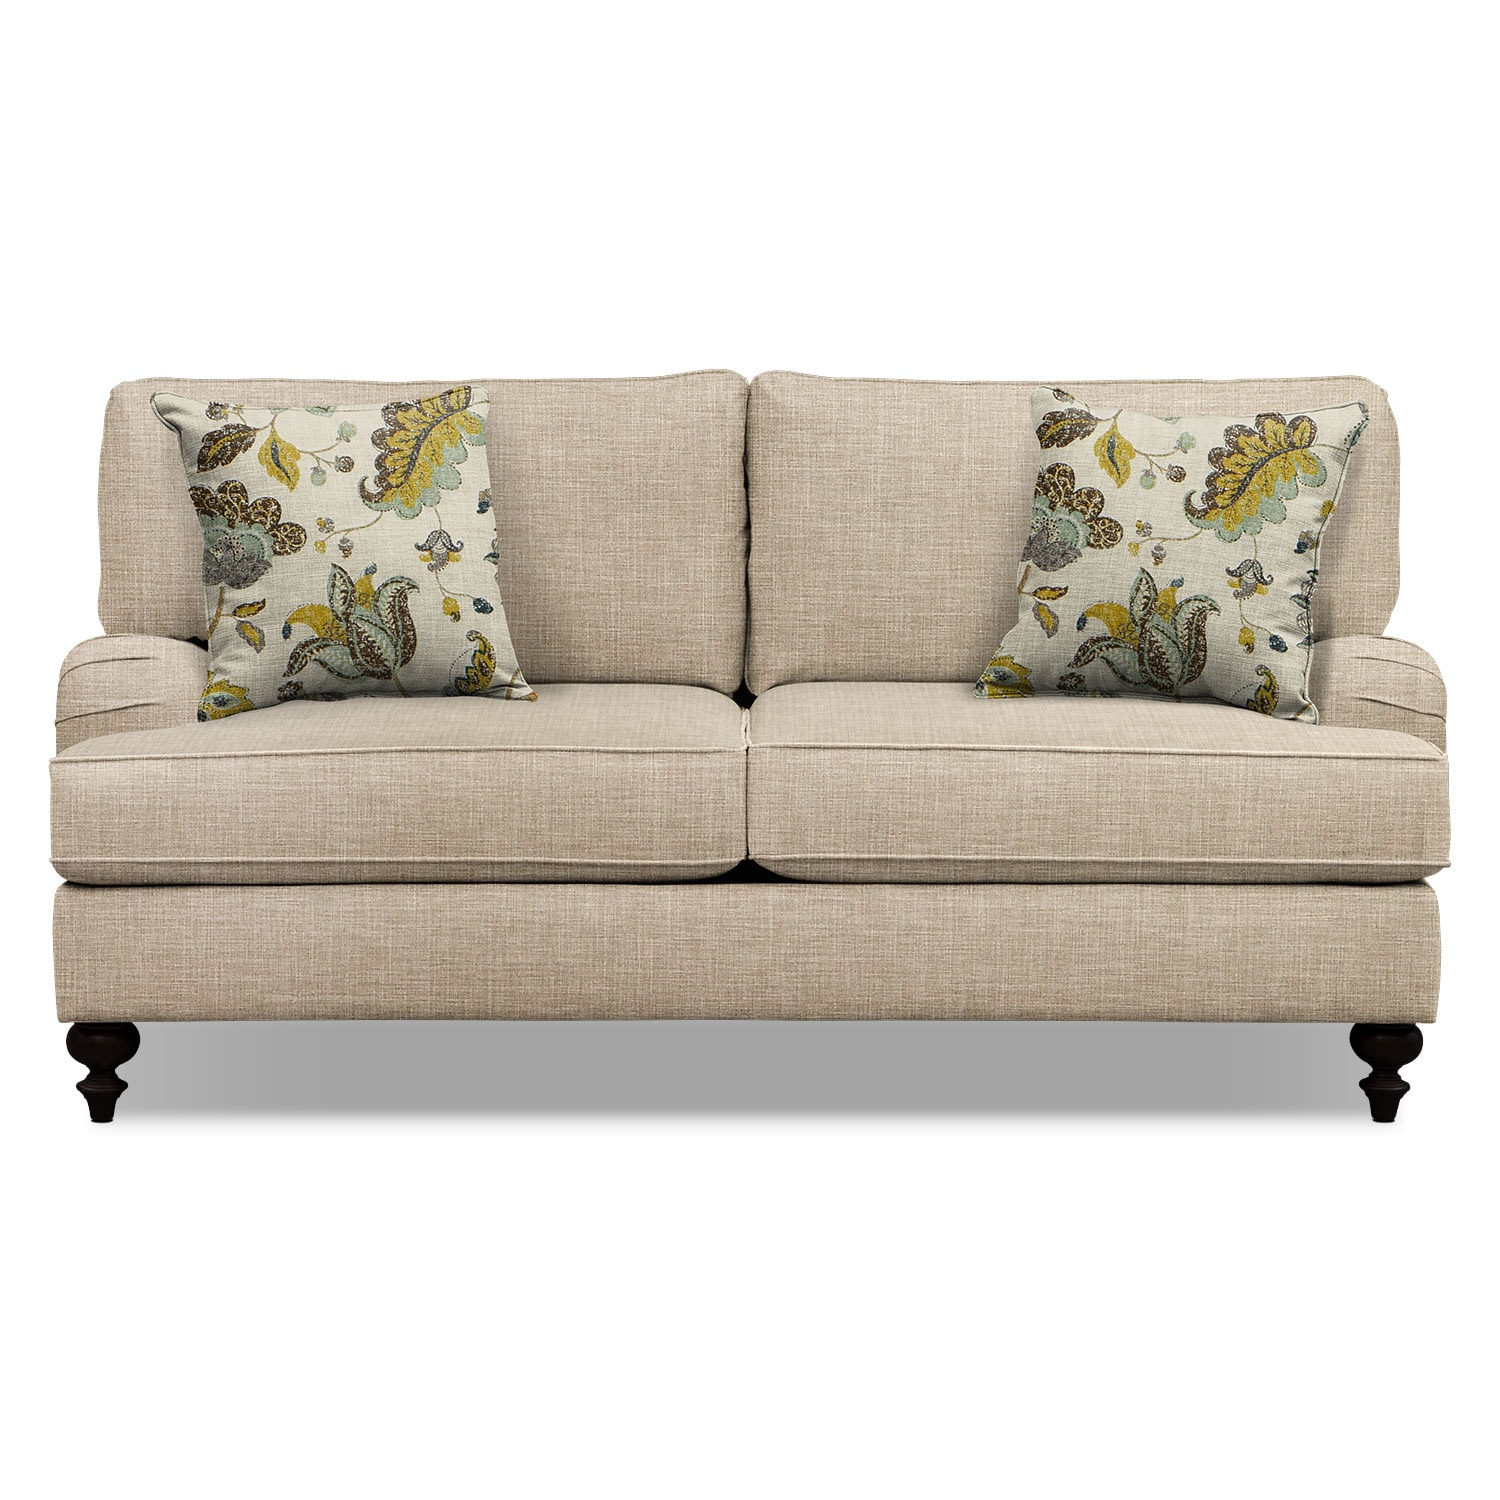 "Living Room Furniture - Avery Taupe 74"" Memory Foam Sleeper Sofa"